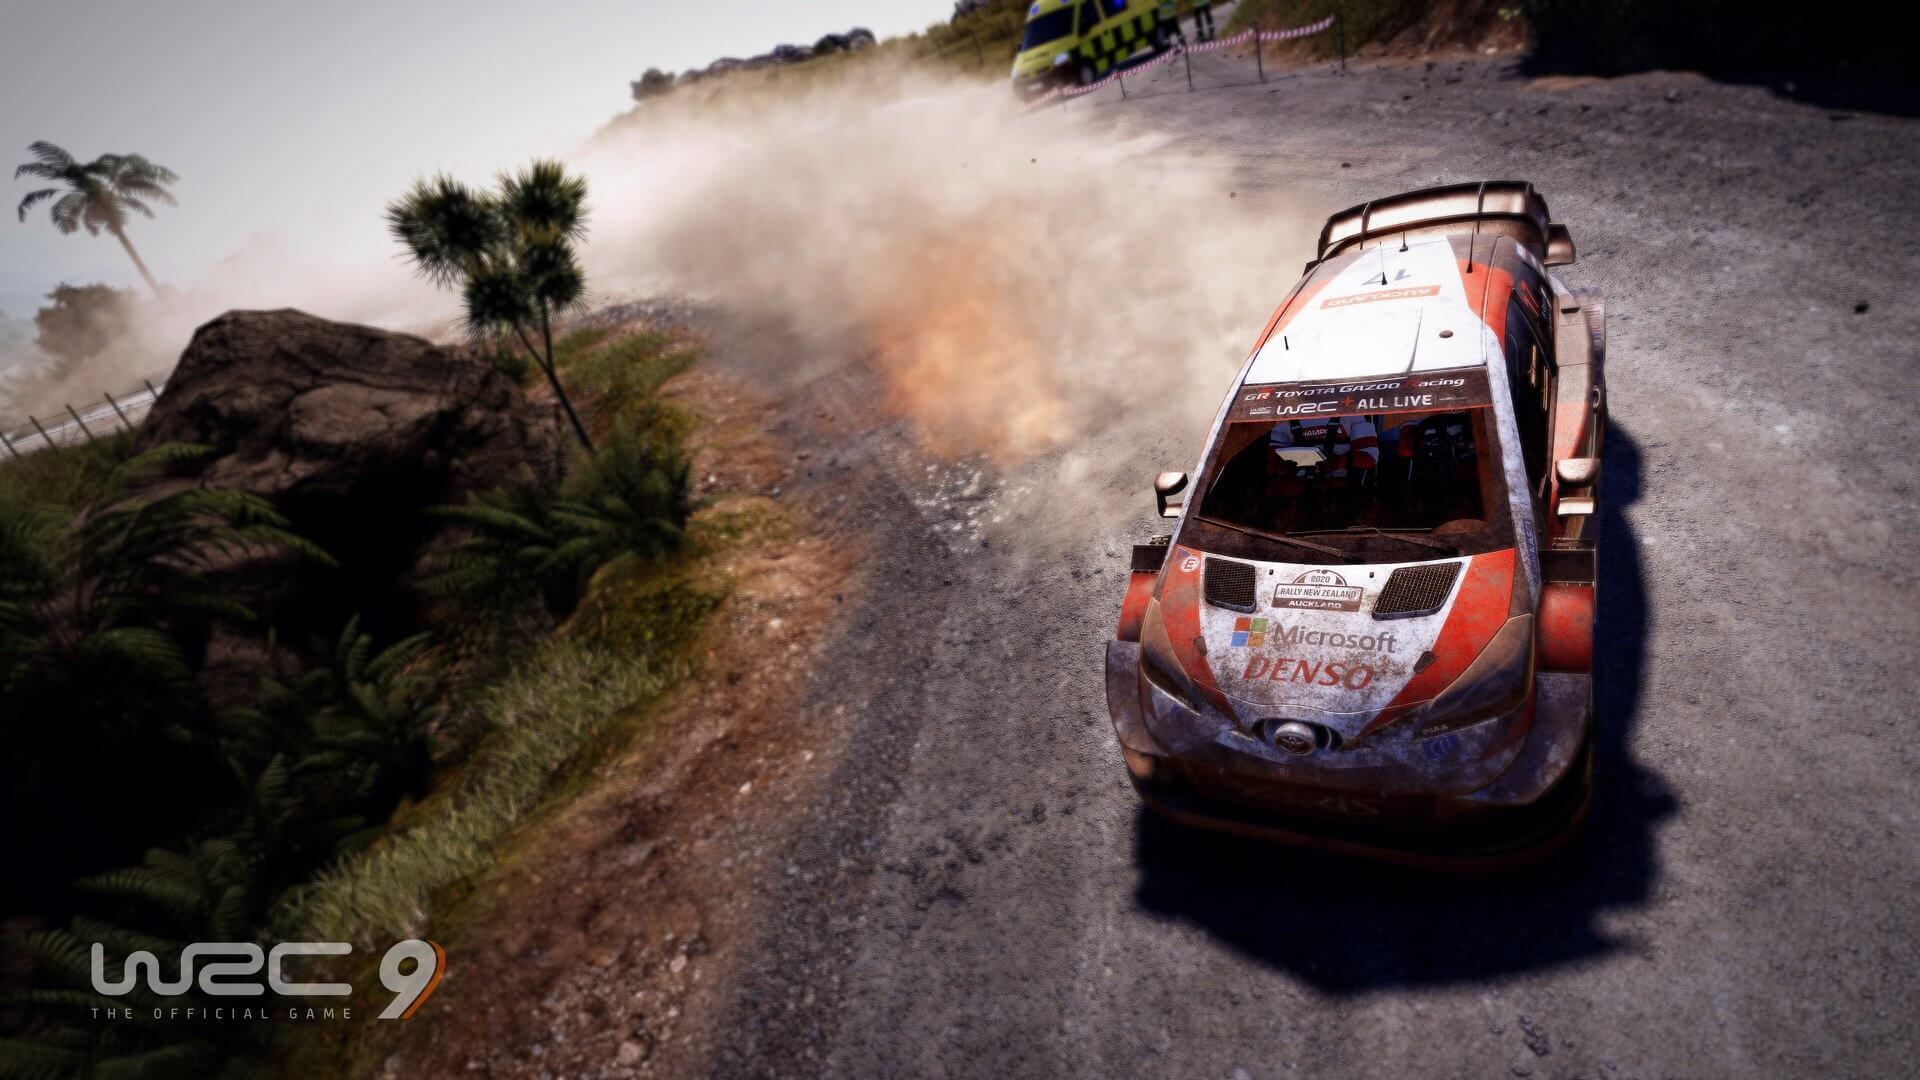 a dirty rally car, trailing dust from a gravel road, slides through a turn